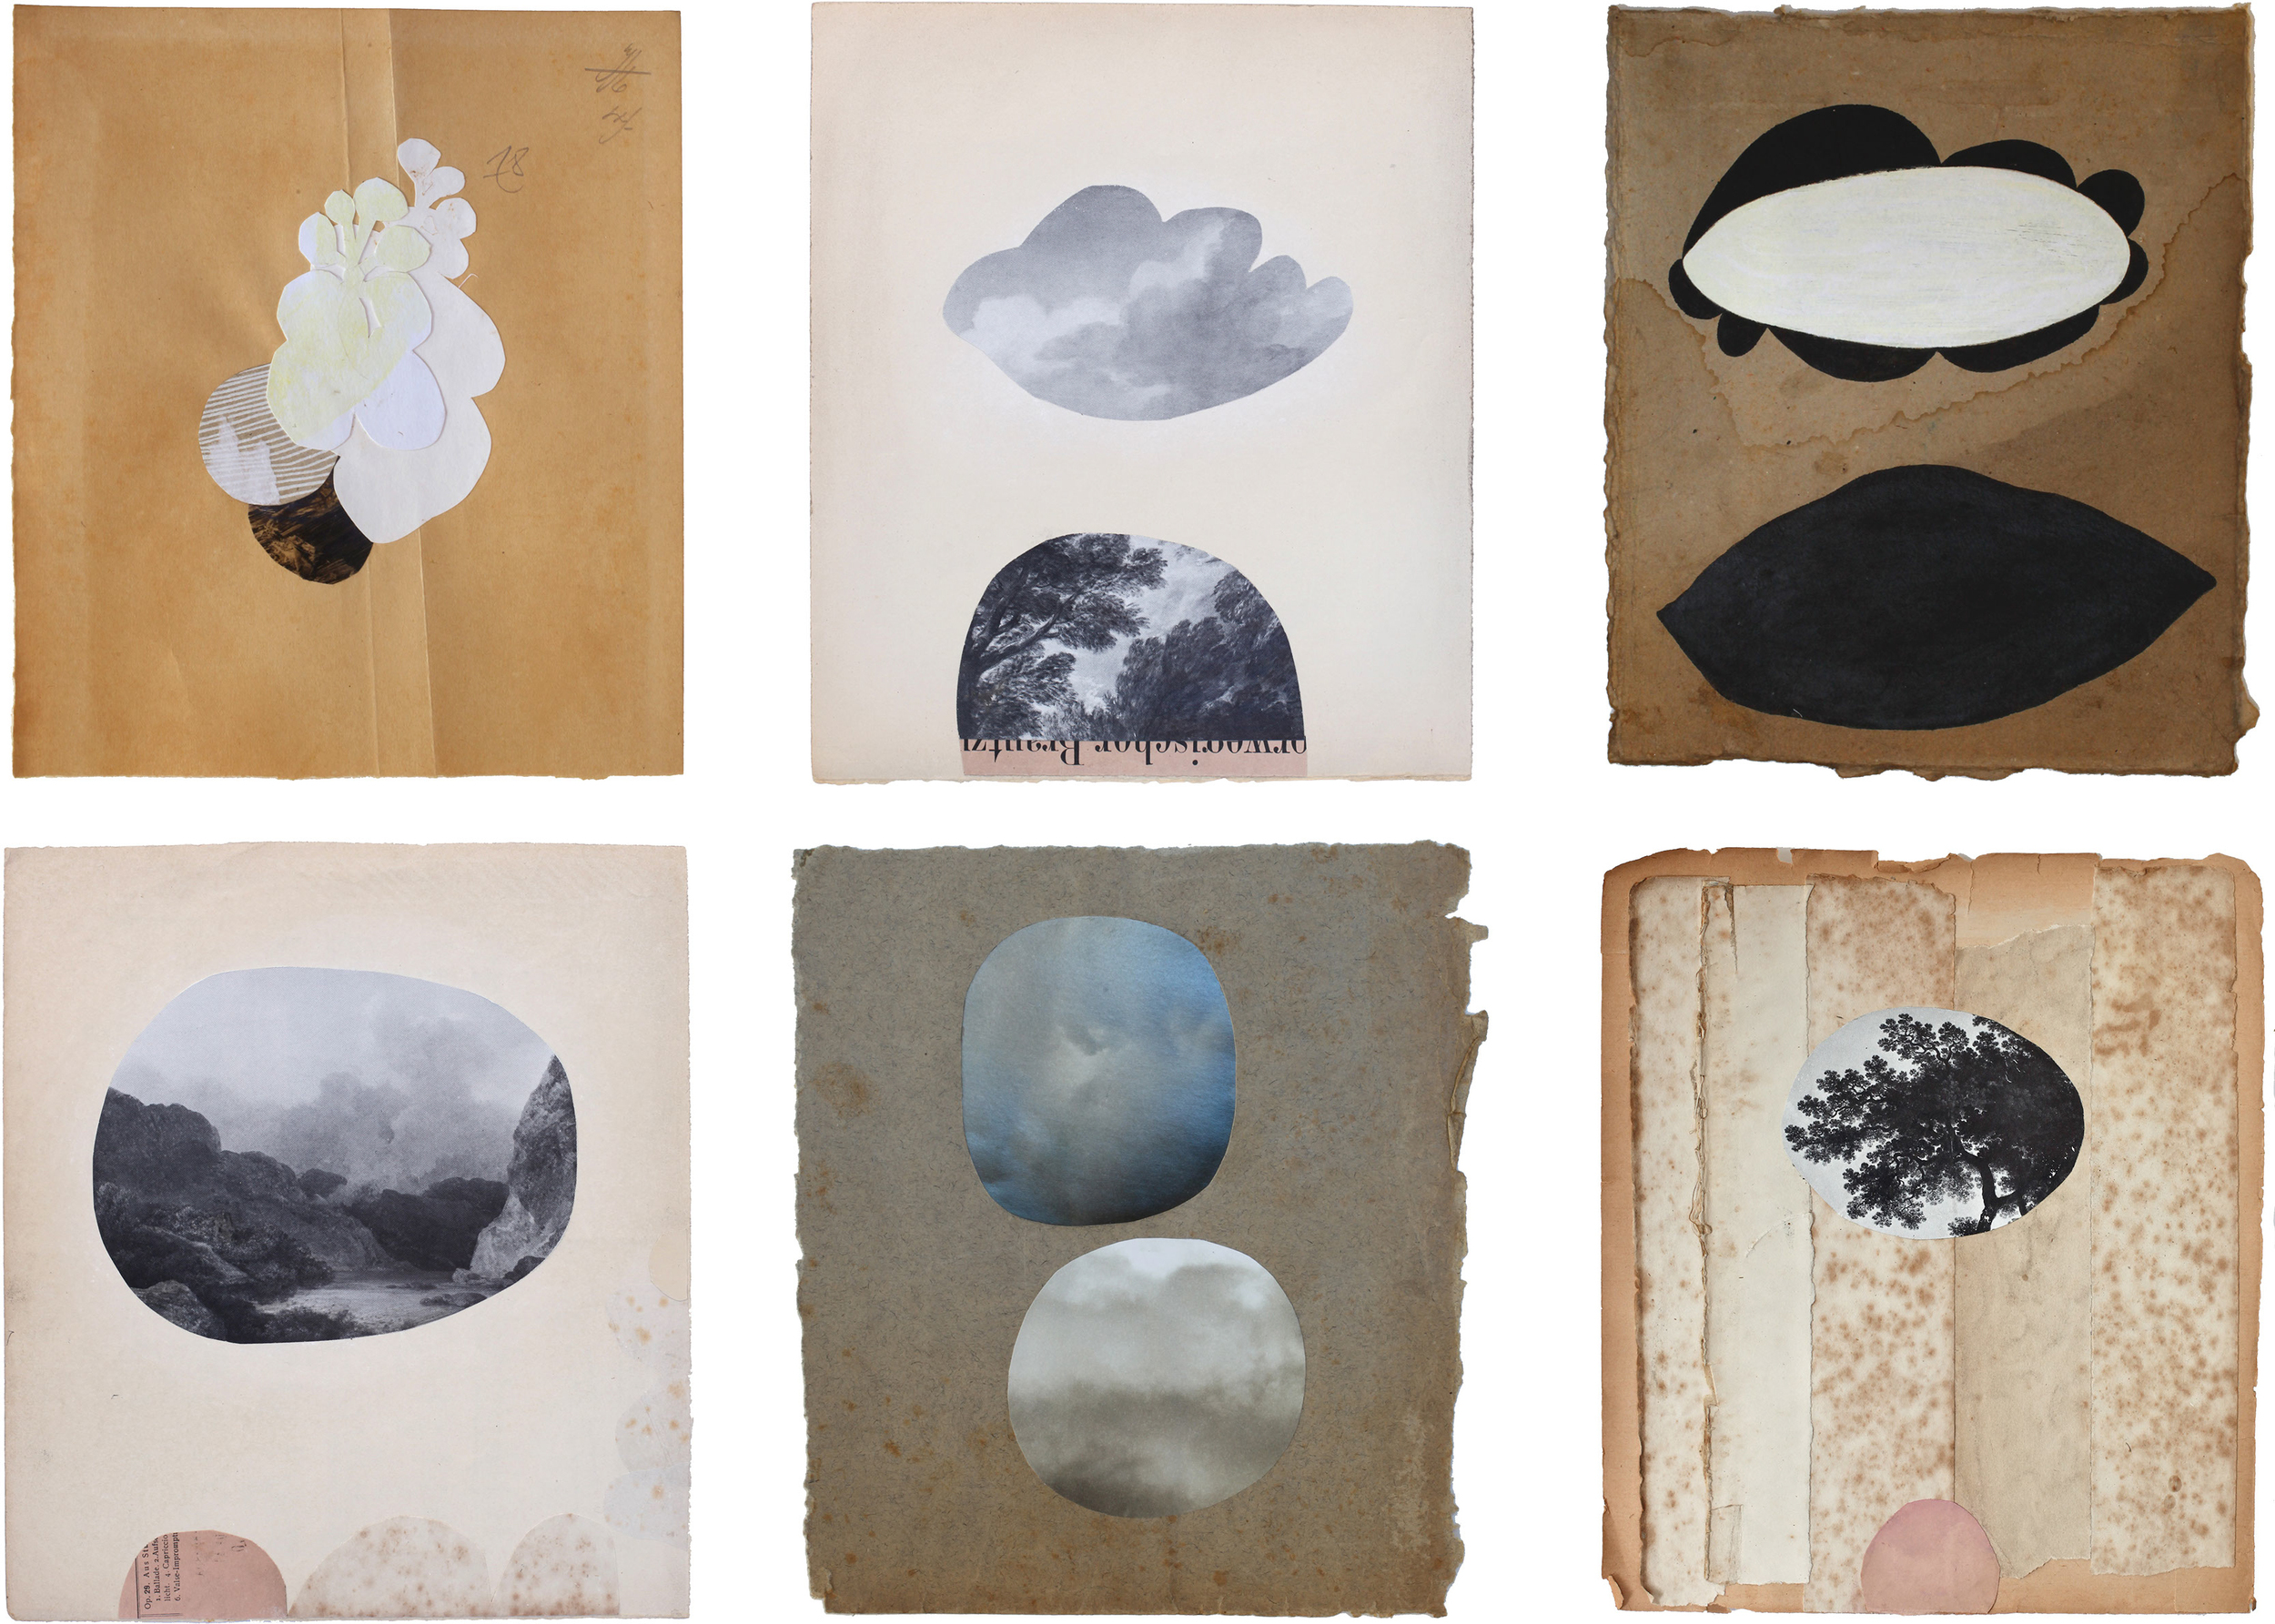 Anonymous Collage<br>4, 55, 11<br>53, 15, 62